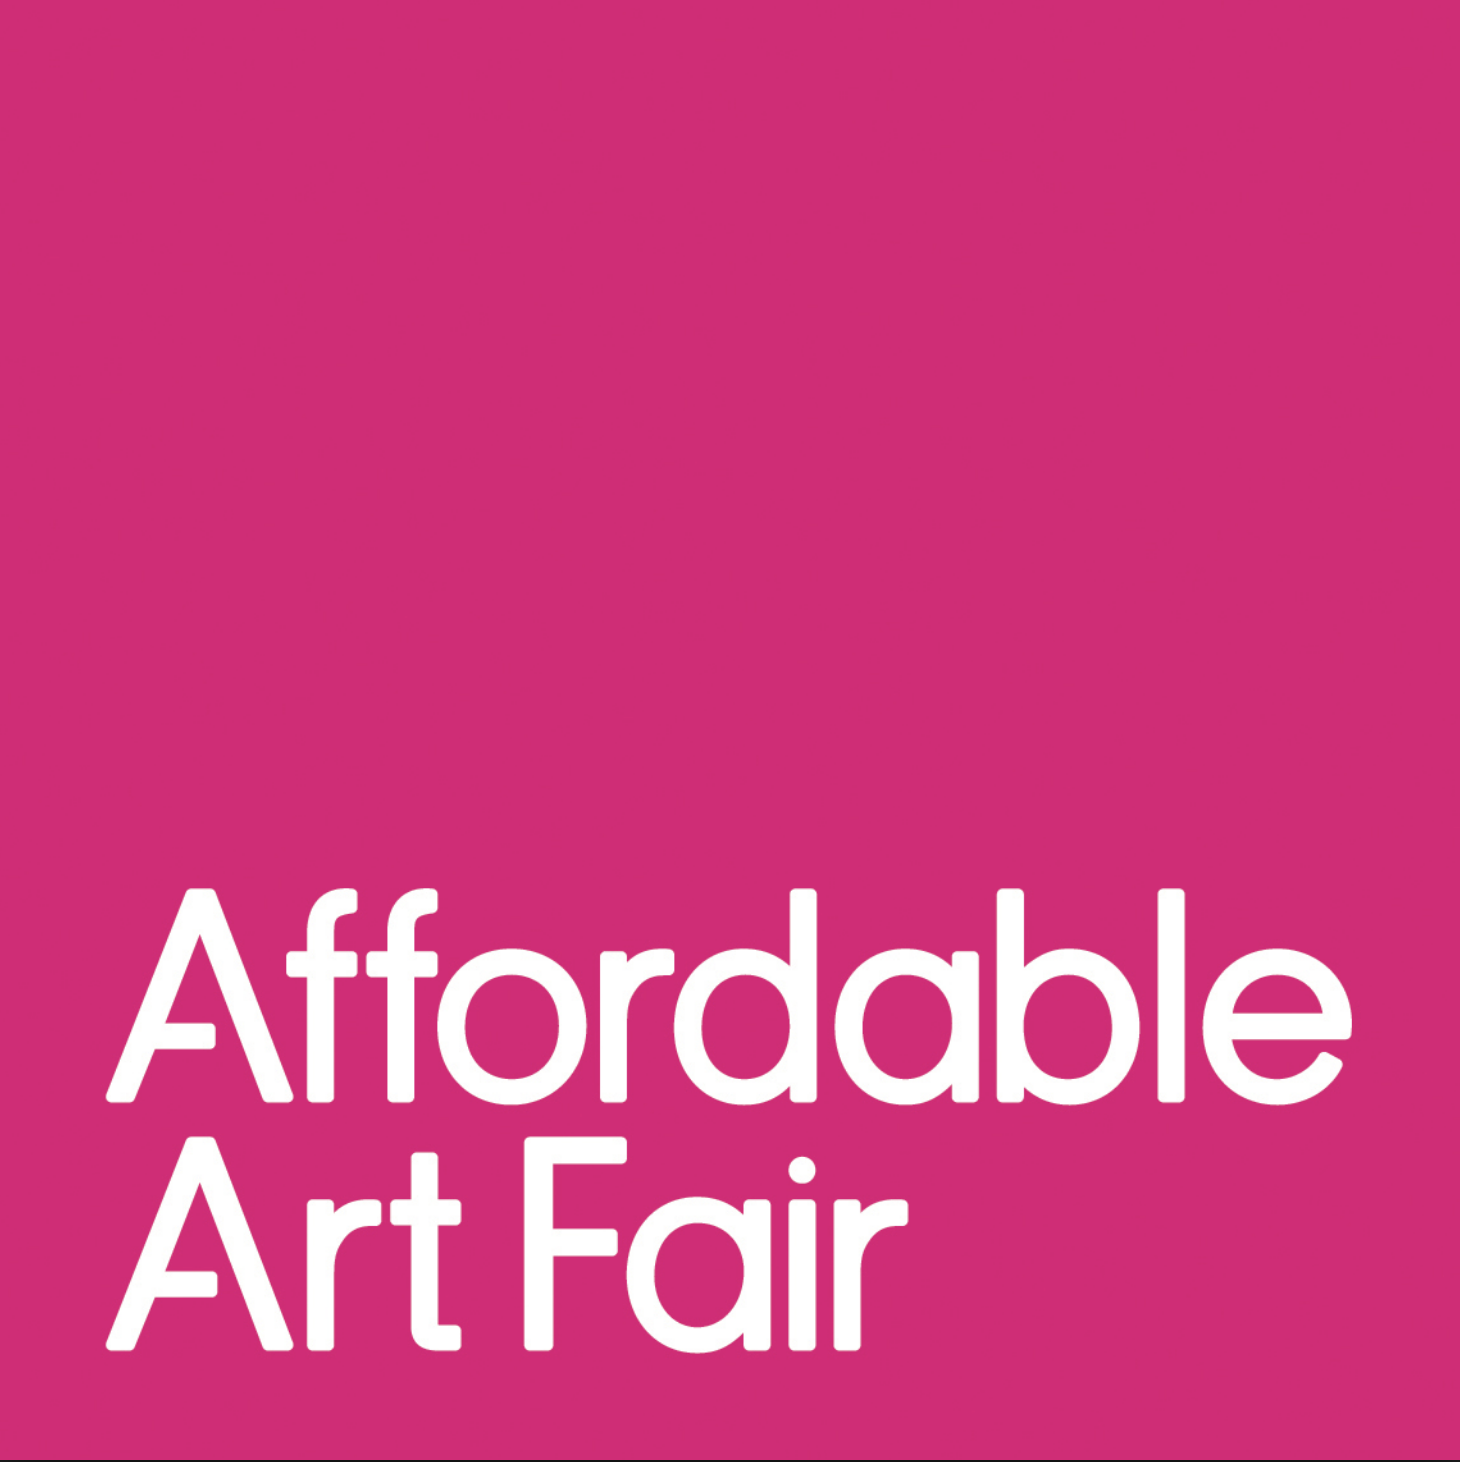 Affordable Art Fair - Showing with Nicholas Bowlby at The Affordable Art Fair in Battersea Park 7-10 March 2019 Stand A4